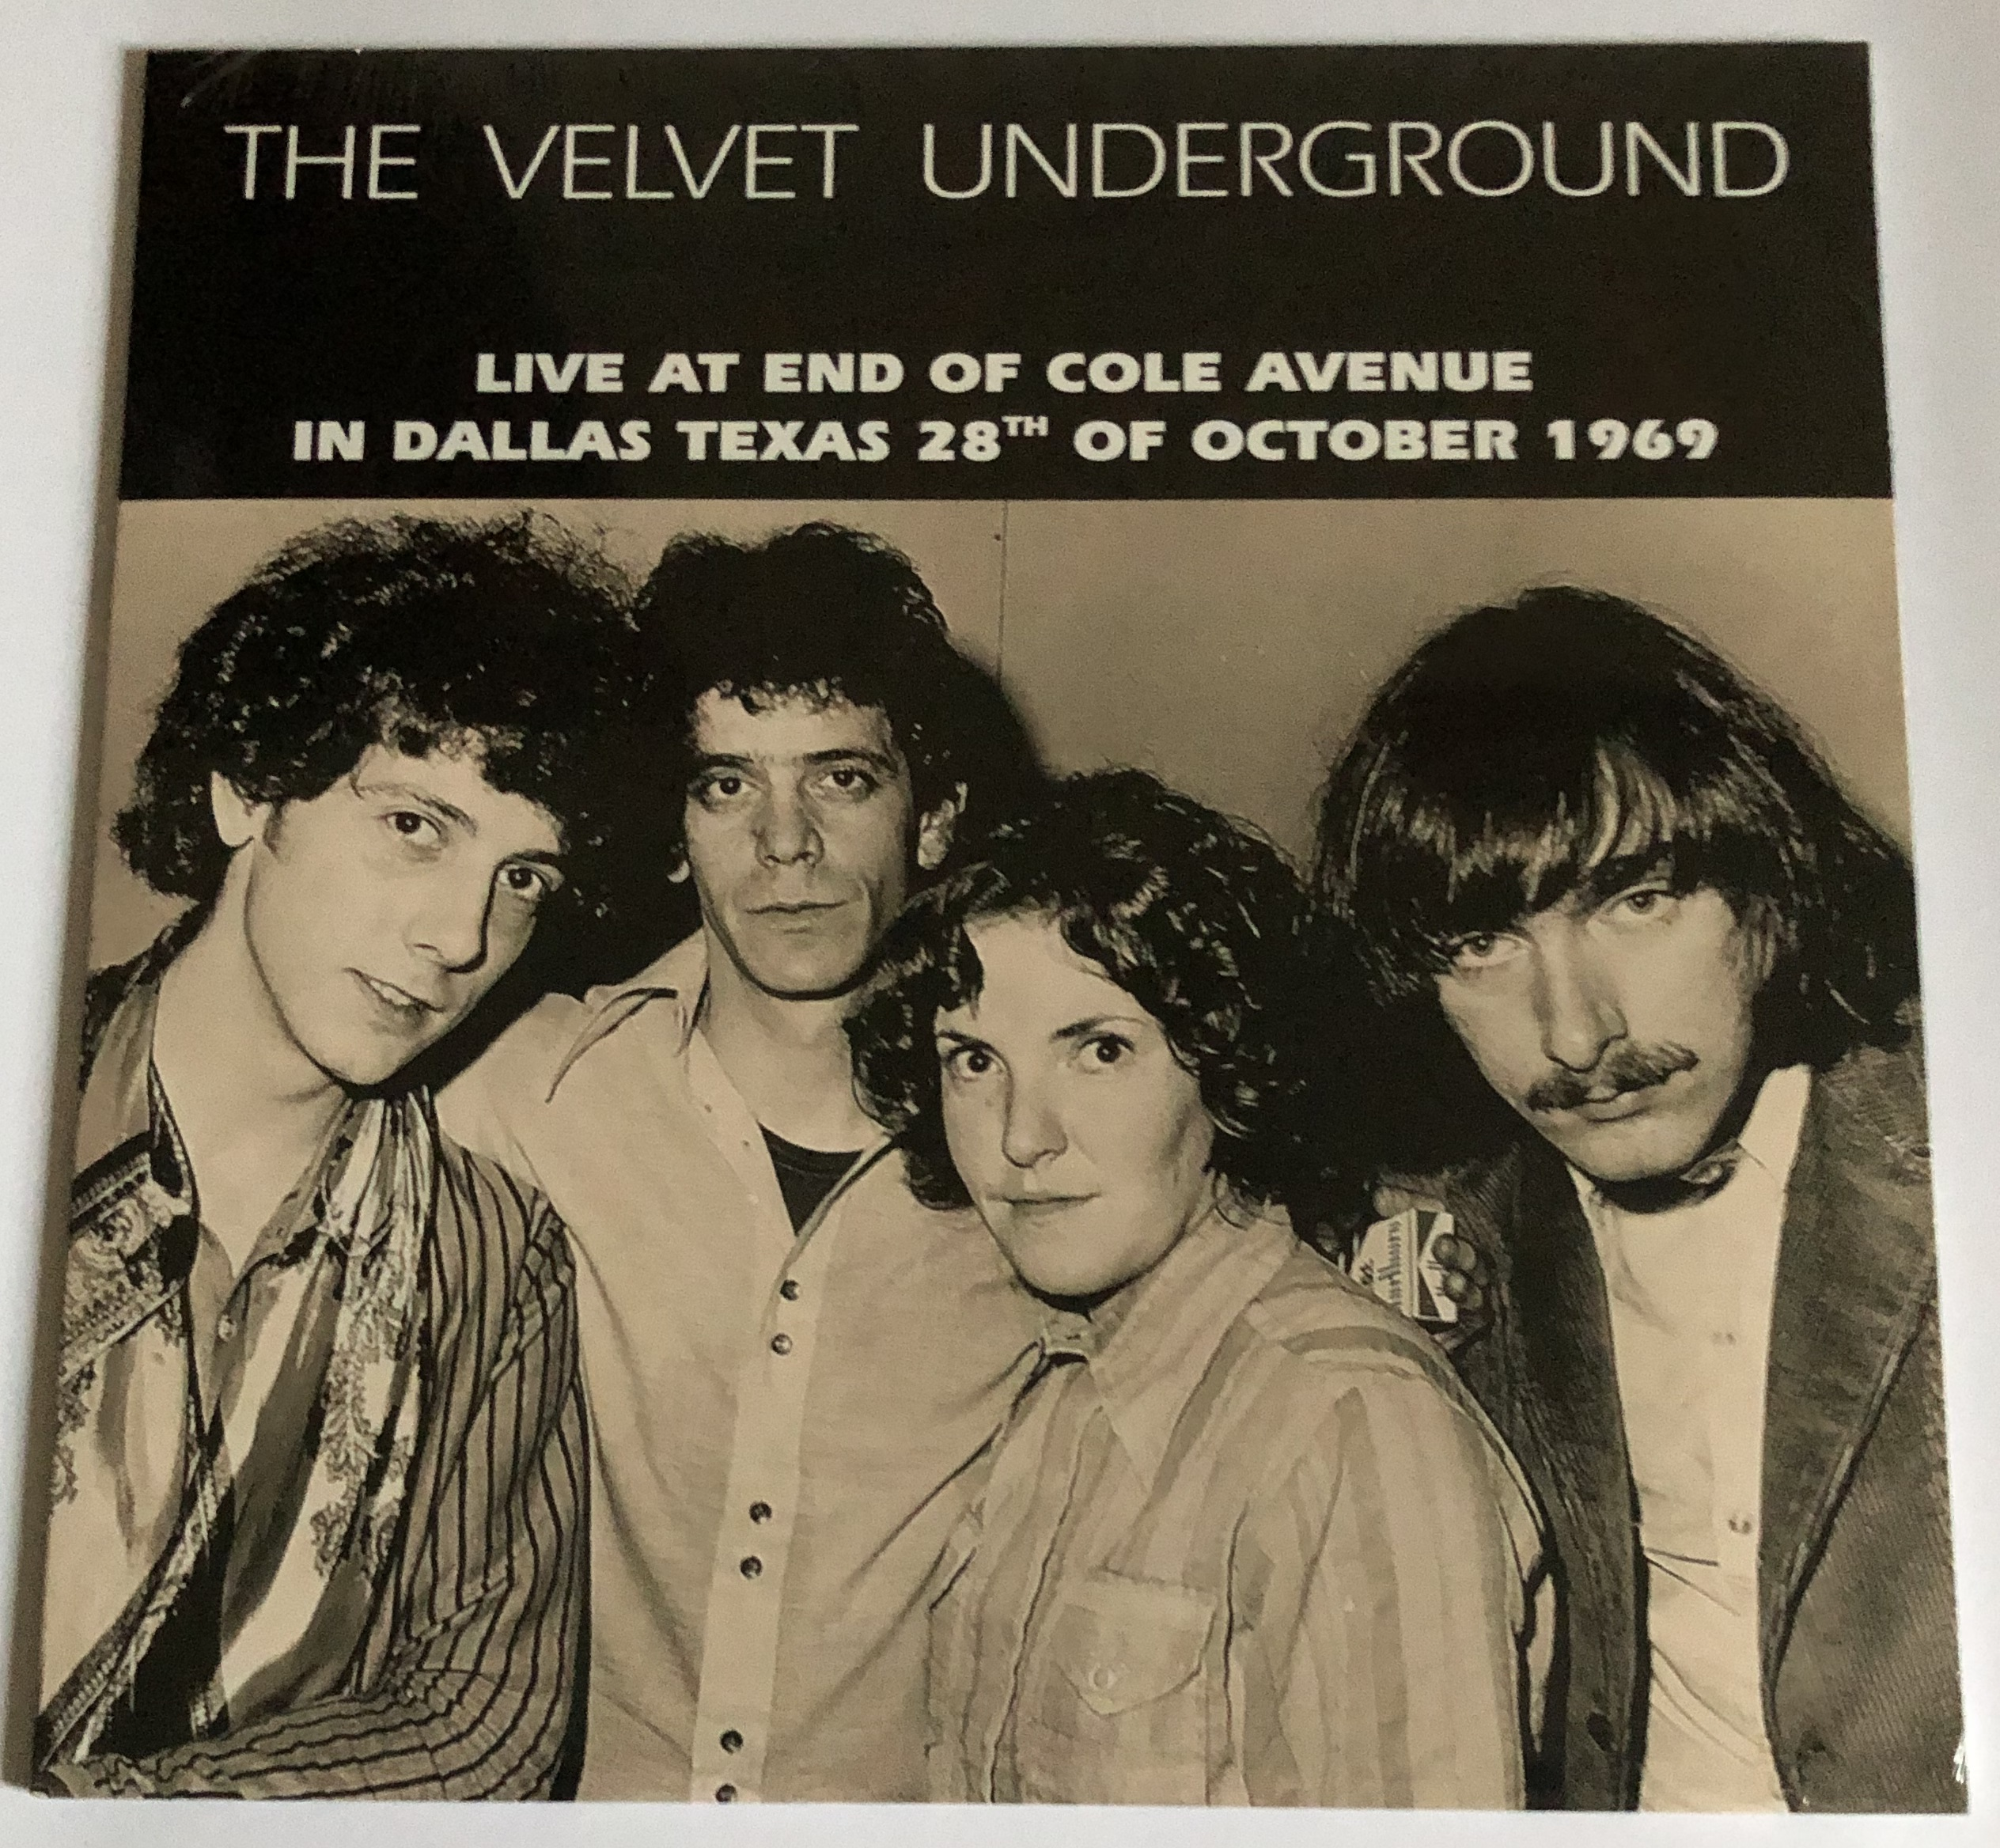 The Velvet Underground - Live At End Of Cole Avenue In Dallas Texas 28th Of October 1969